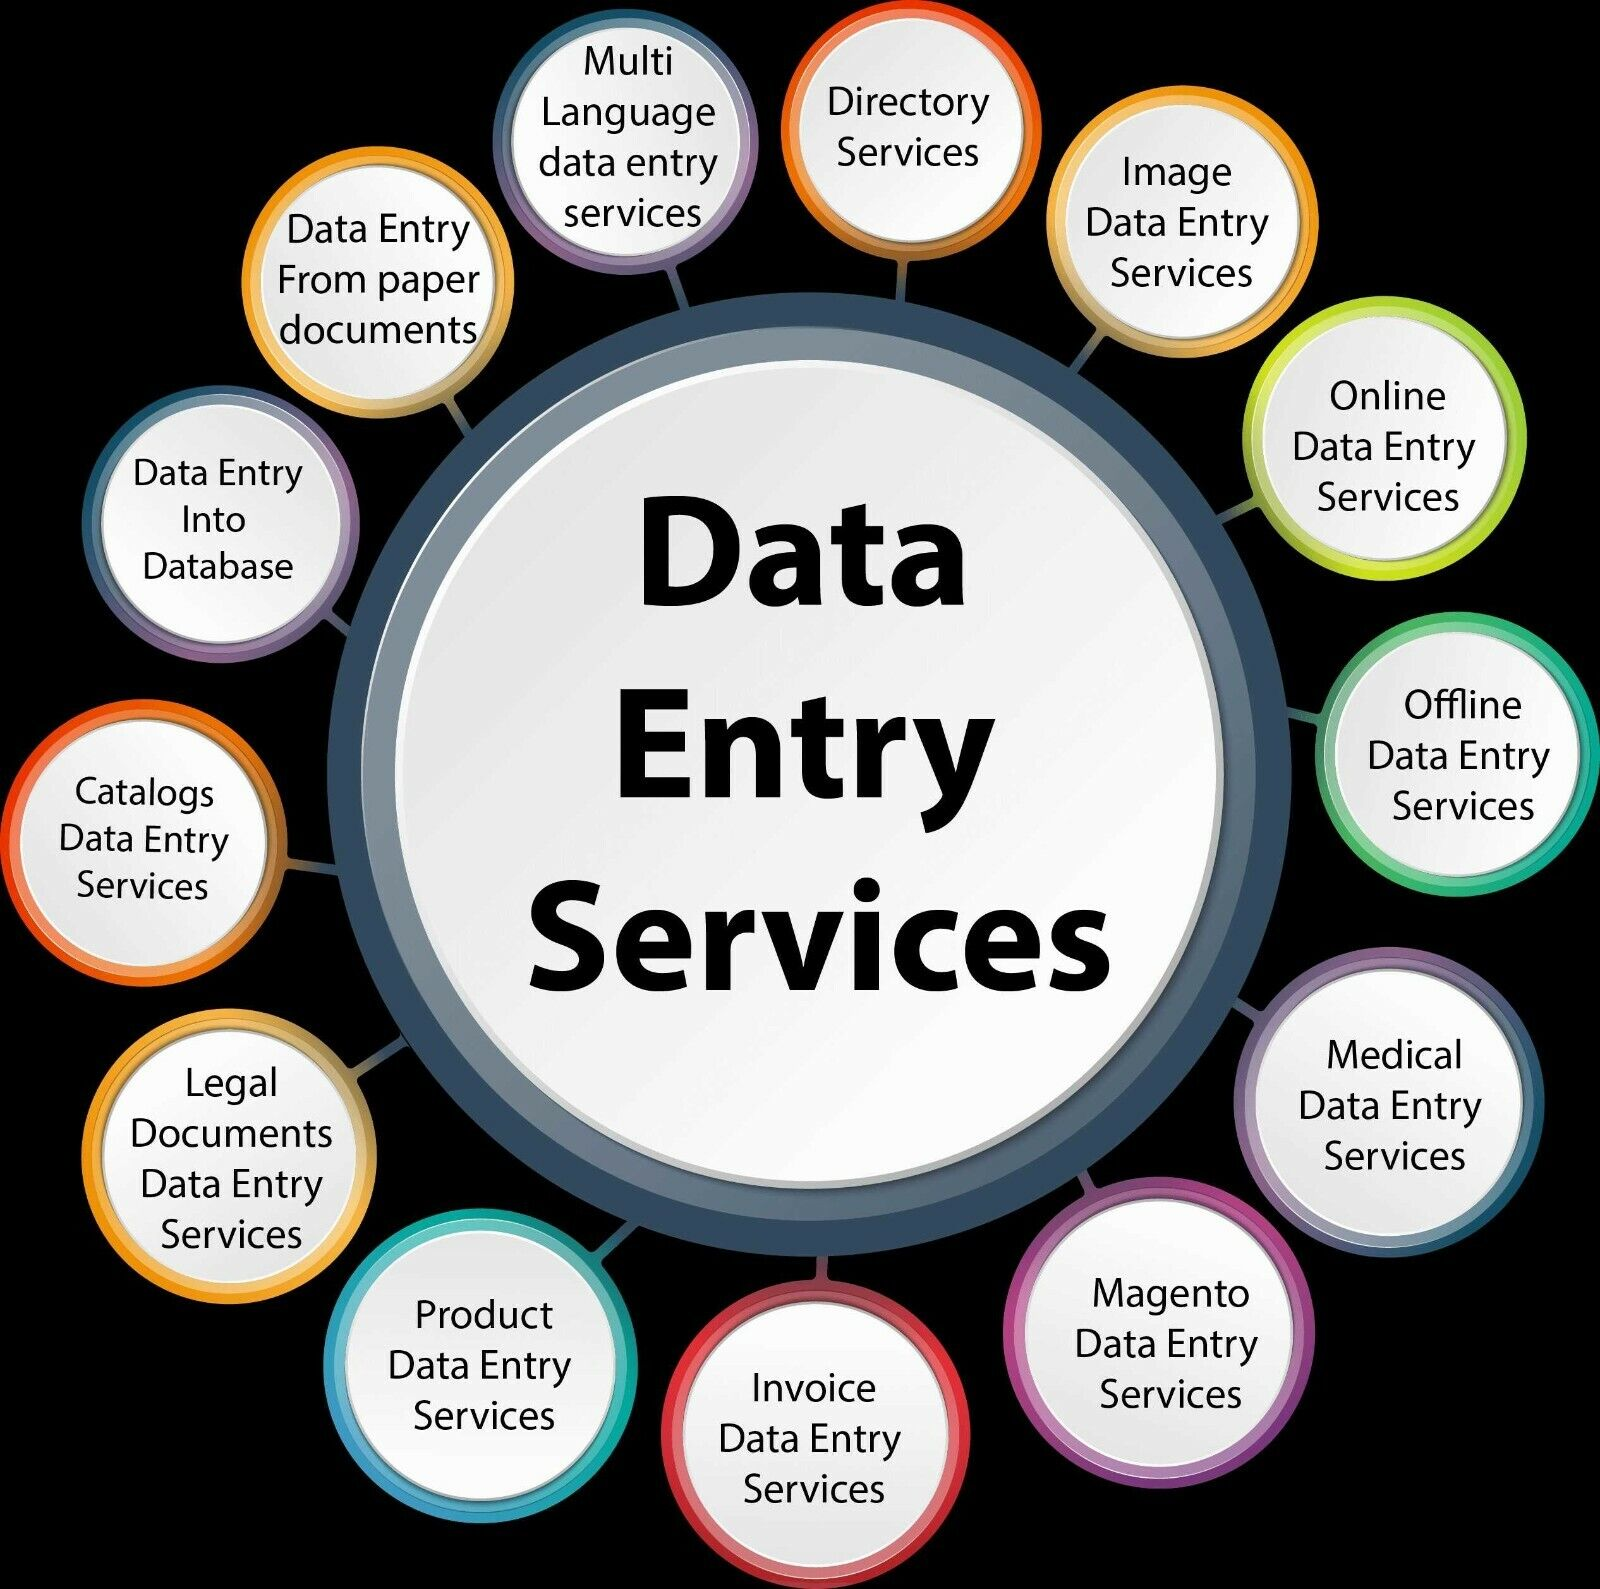 I Will Work As Your Assistant - Perfect Data Entry And Web Research - $9.99